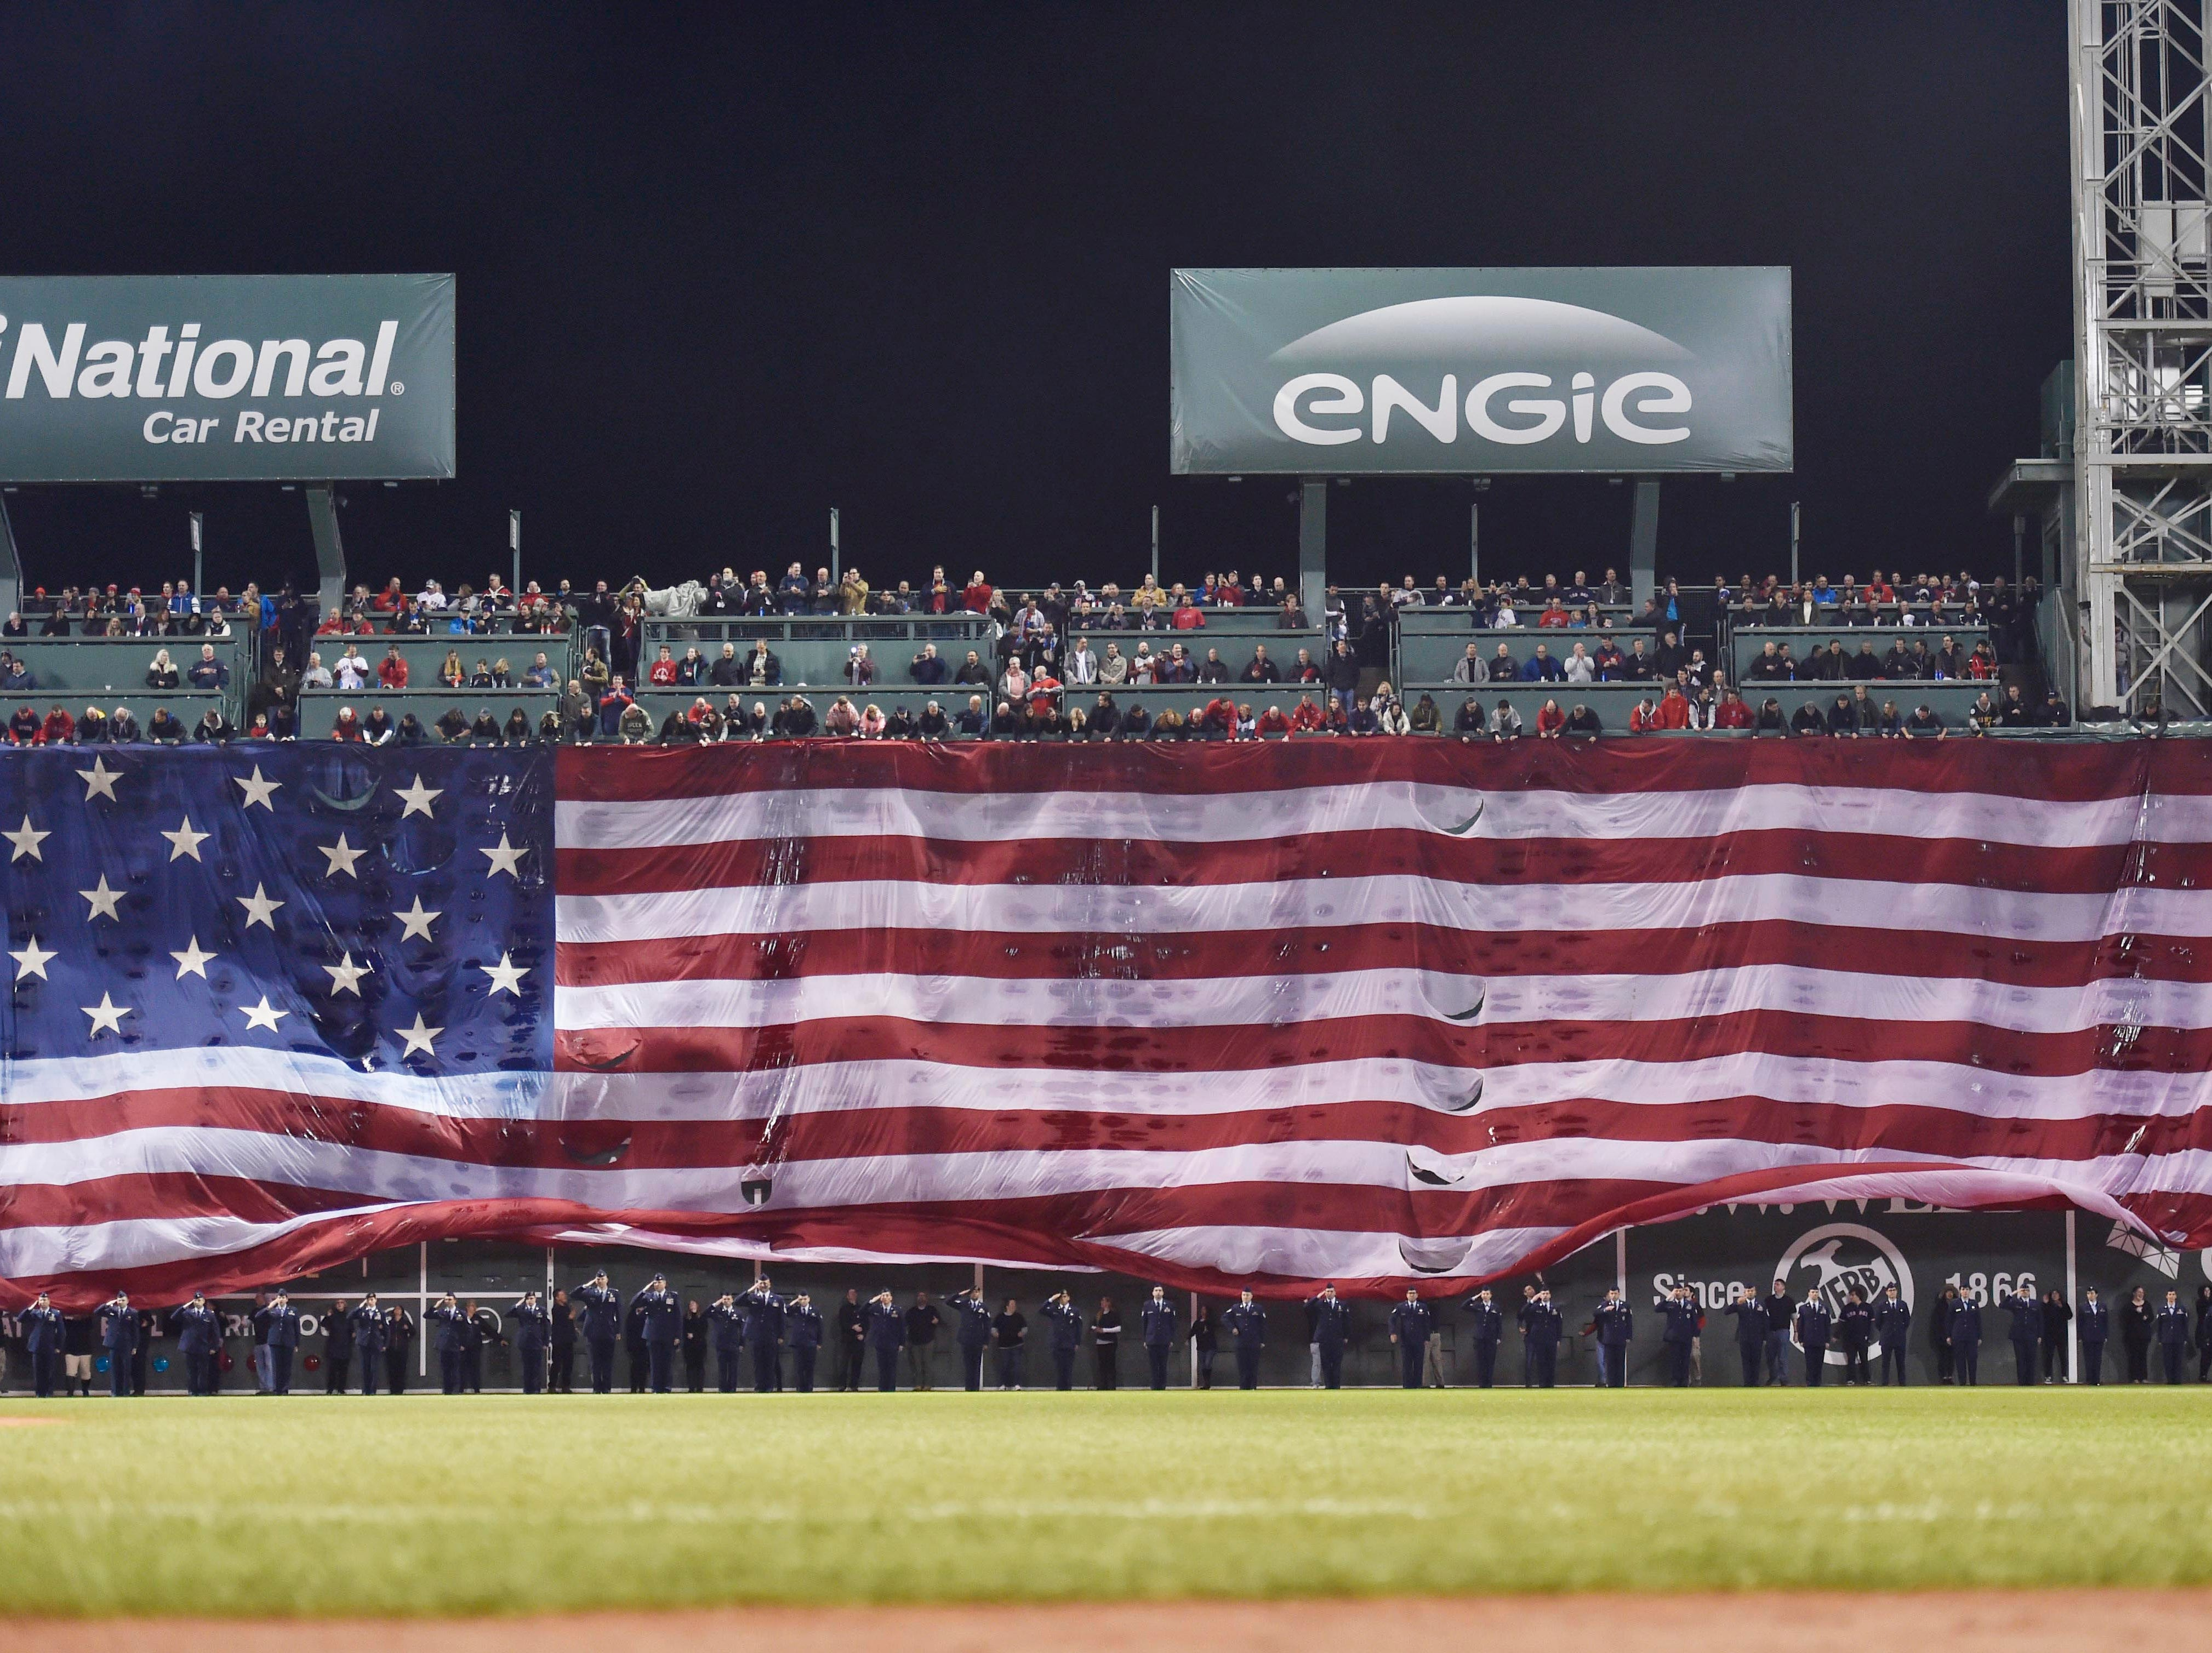 Game 1 at Fenway Park: A giant flag is draped over the Green Monster before the game.